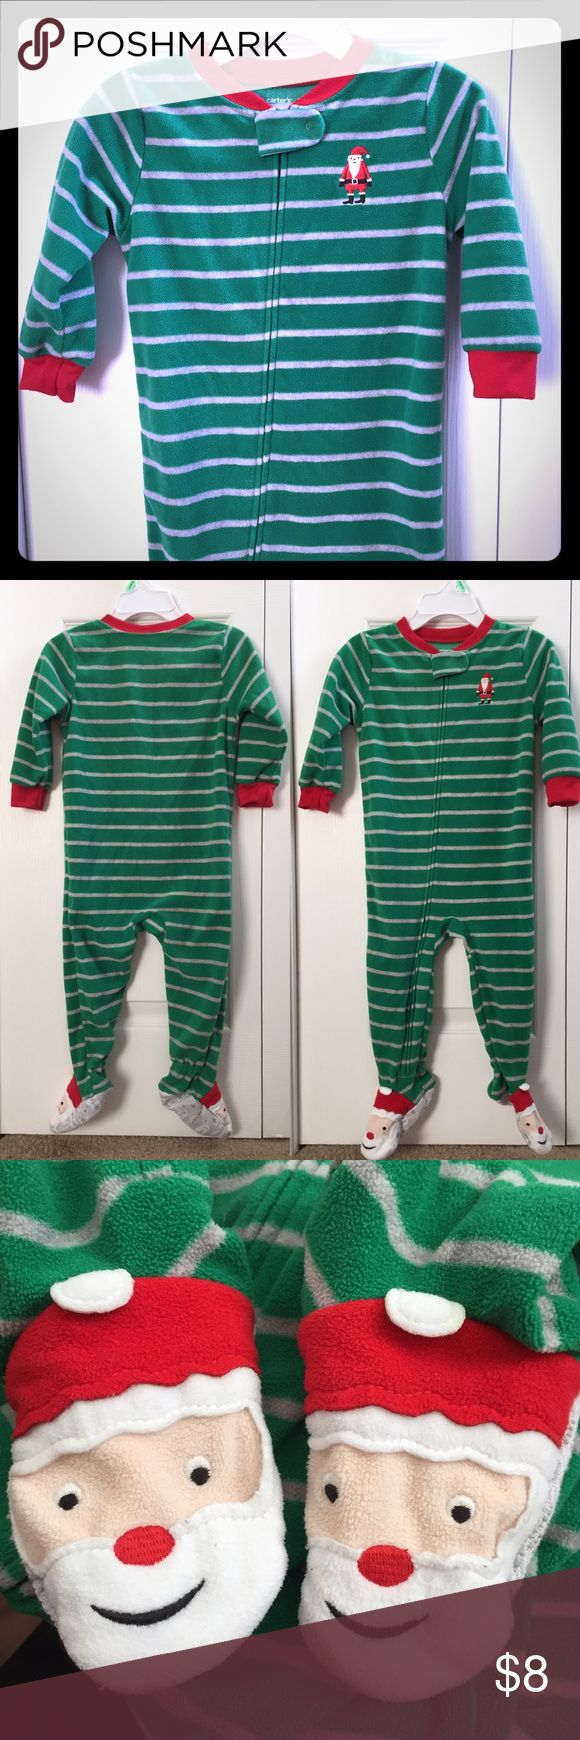 🎄Carter's Christmas PJs🎄 Carter's Fleece Christmas footie pajamas with Santa on the chest and feet! Green with grey stripes.  Only worn twice before my son grew out of them! 🎅🏼🎄 price firm Carter's One Pieces Footies